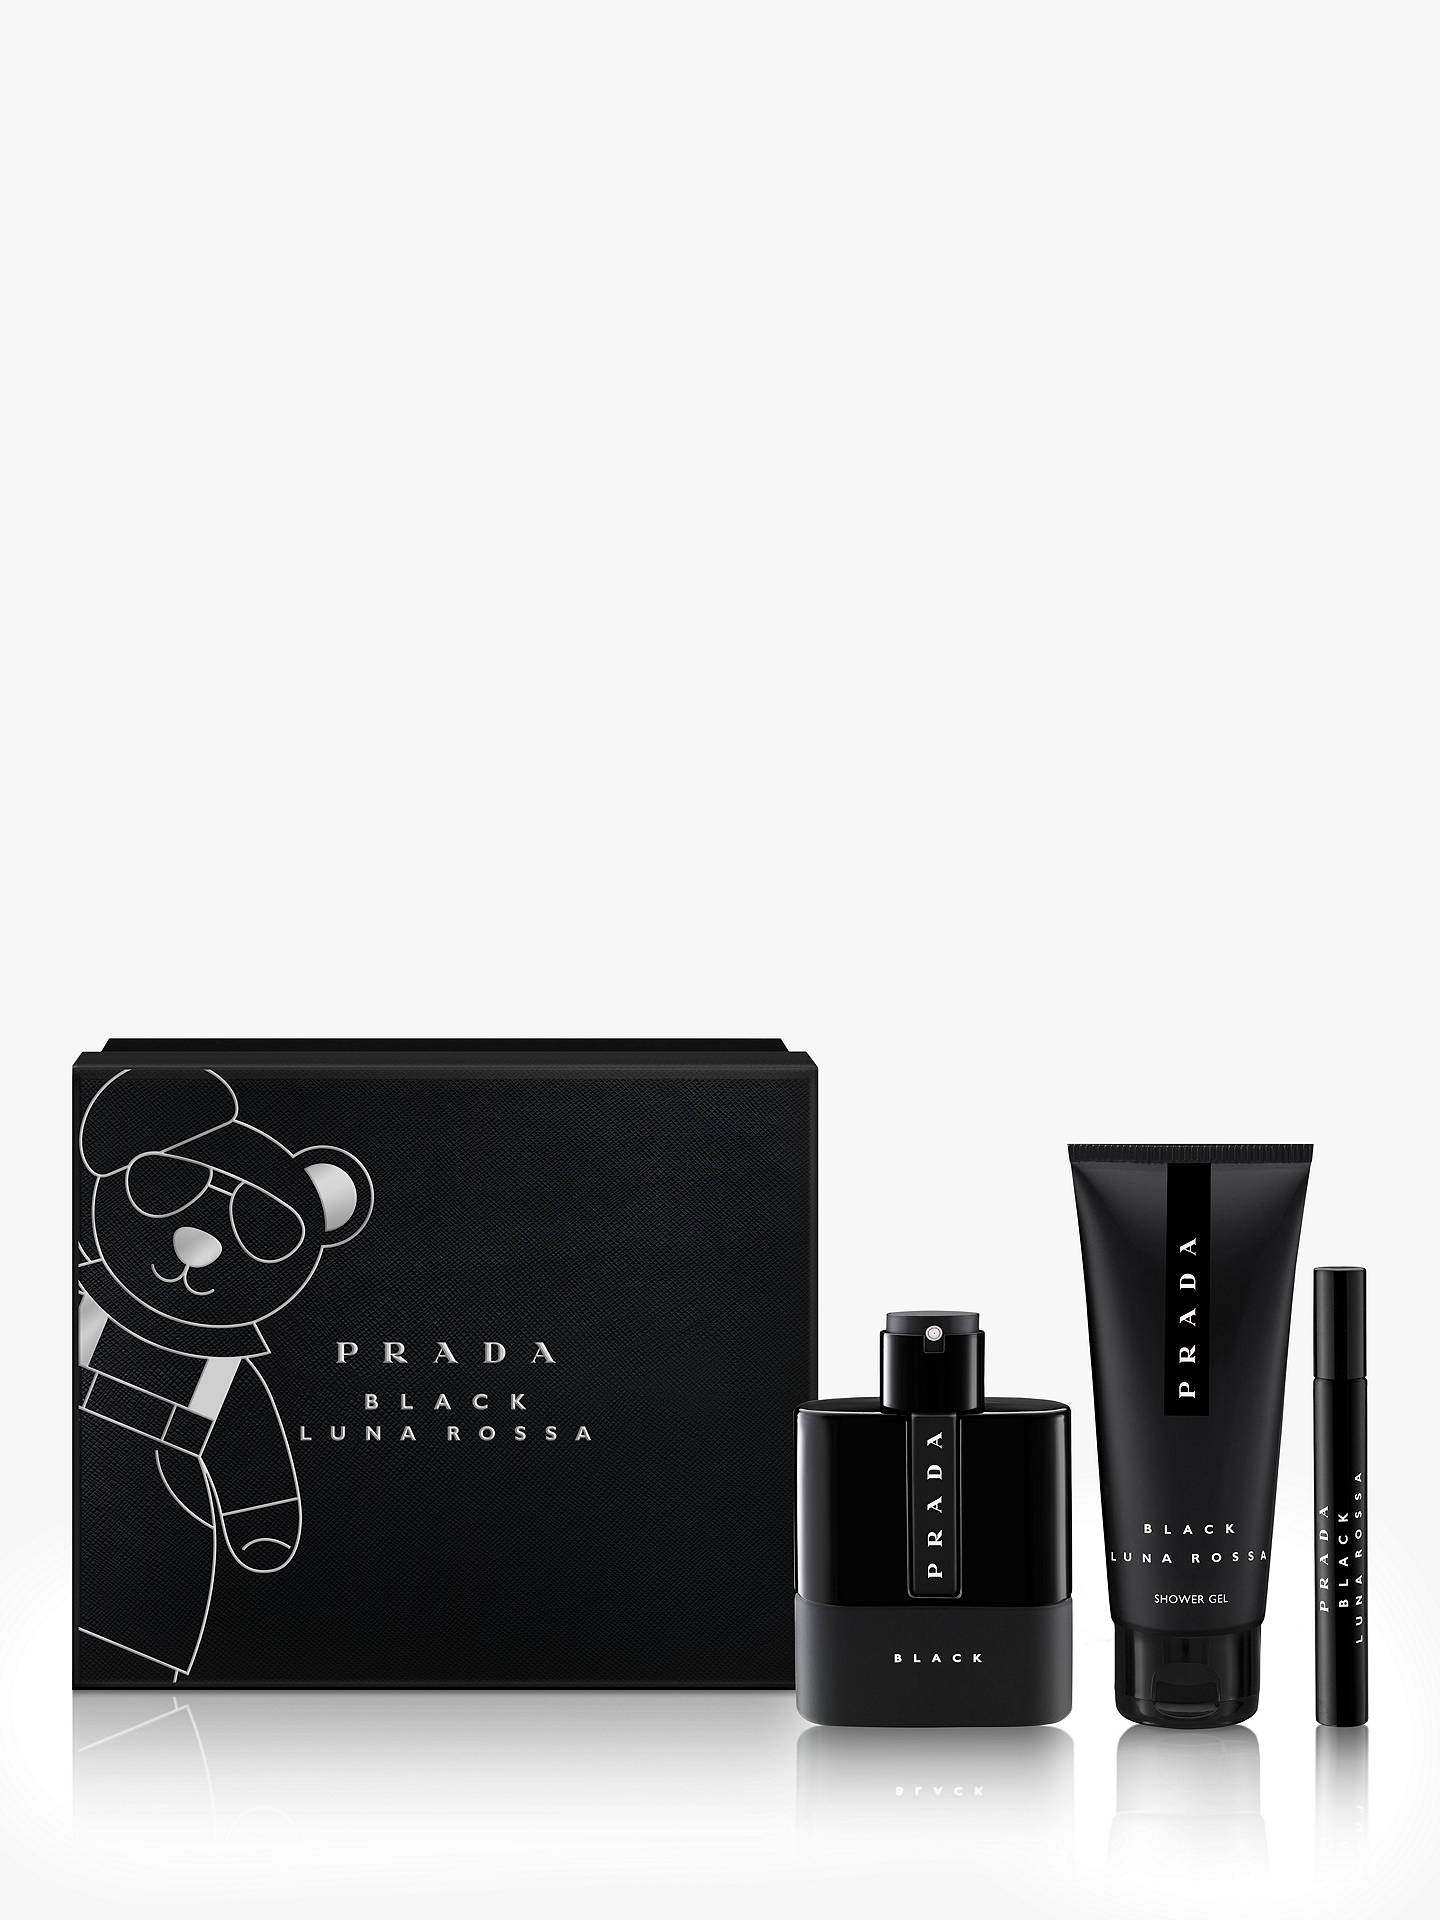 BuyPrada Luna Rossa Black 100ml Eau de Parfum Fragrance Gift Set Online at johnlewis.com